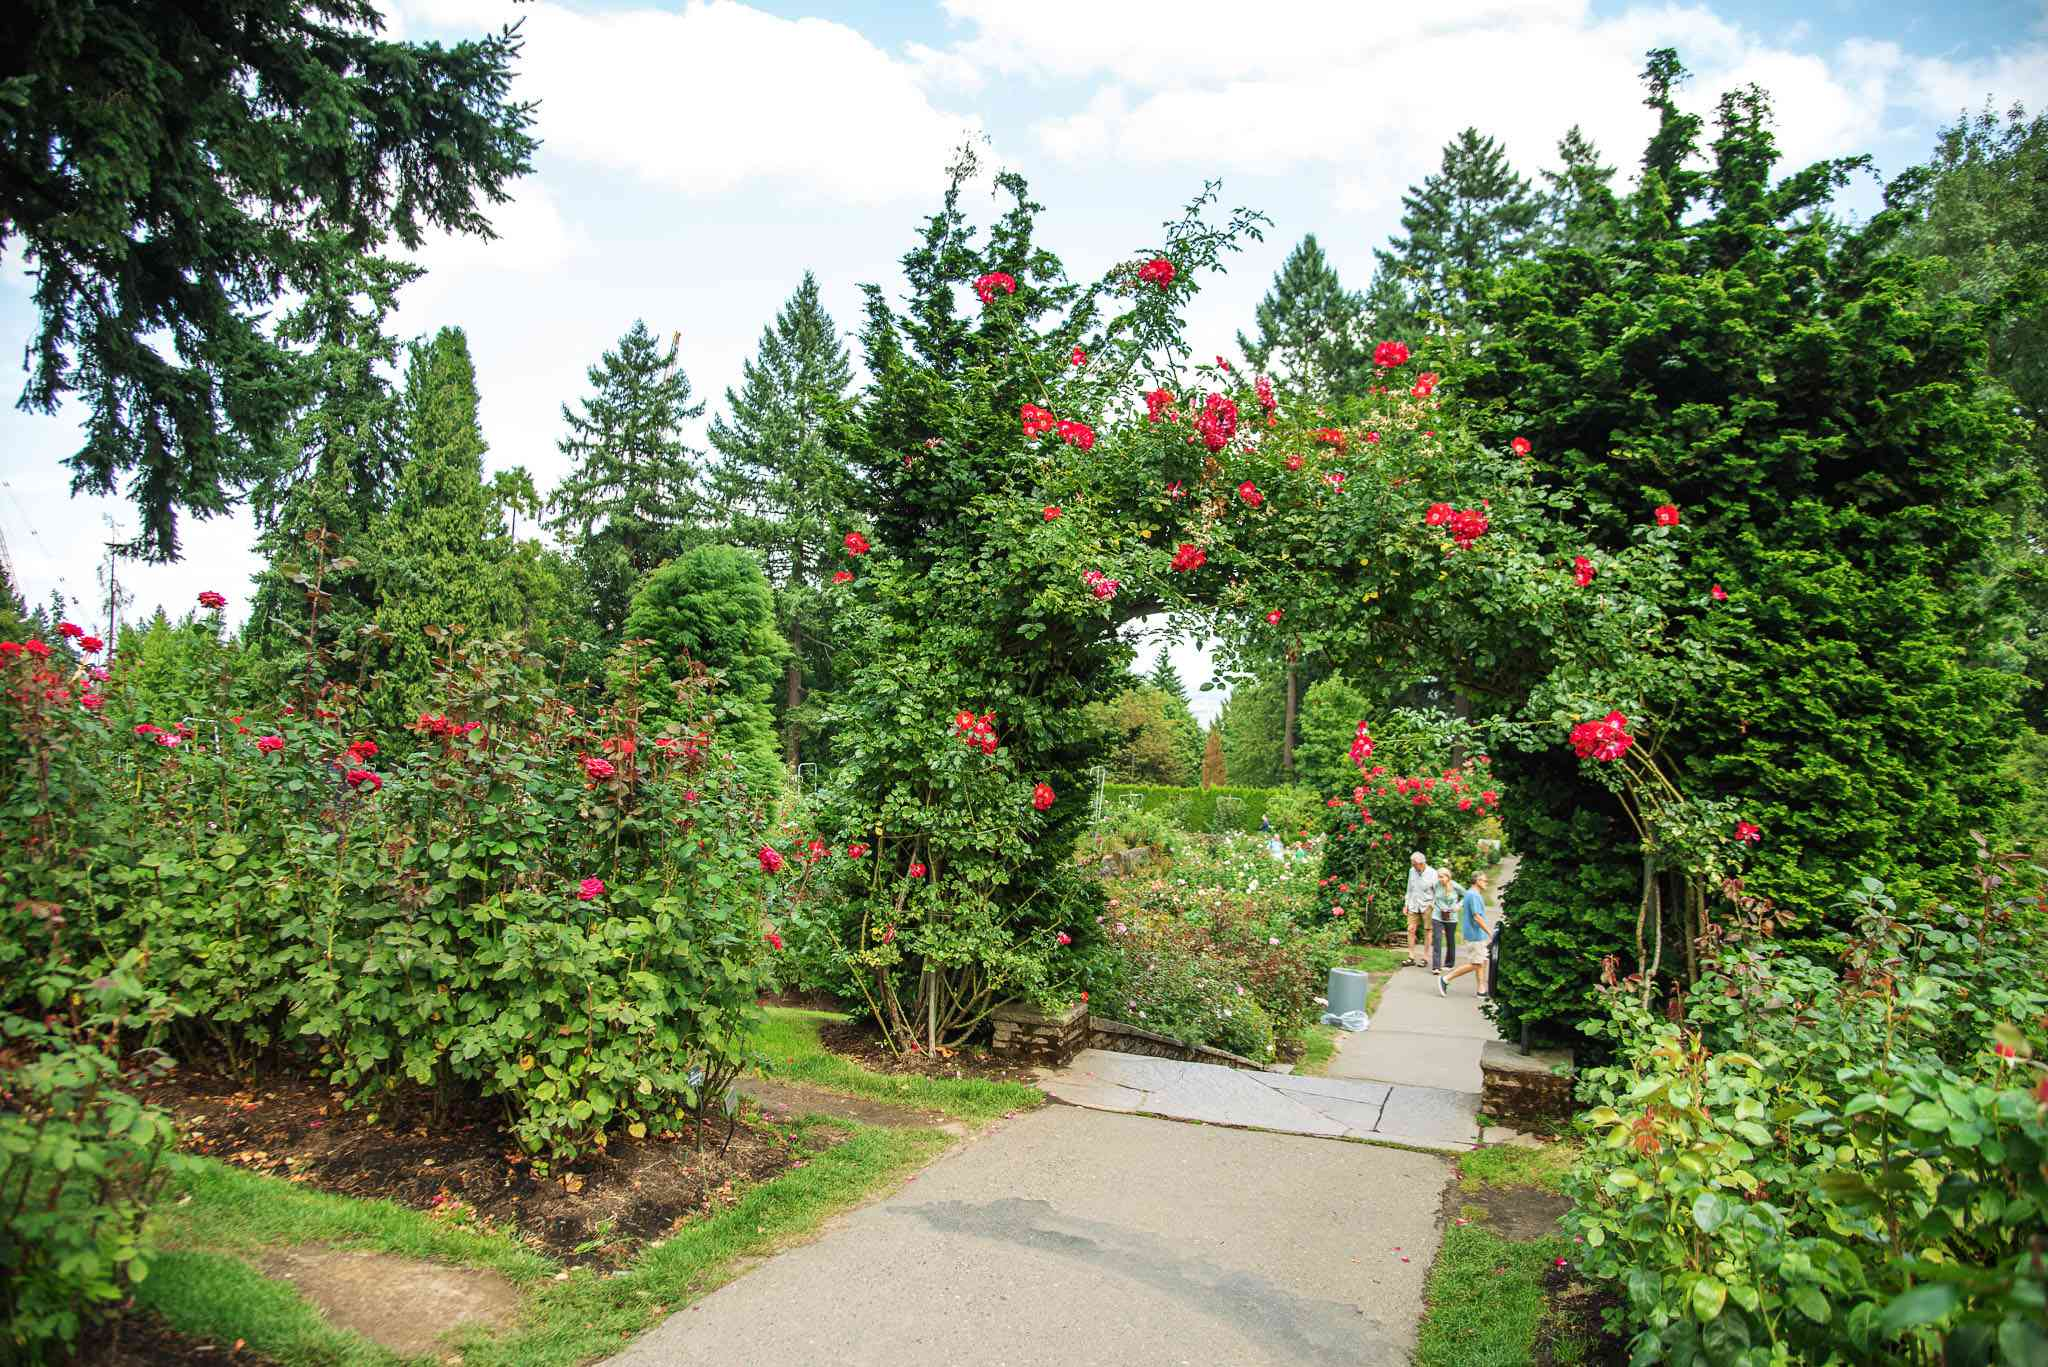 An arch way covered in rose bushes